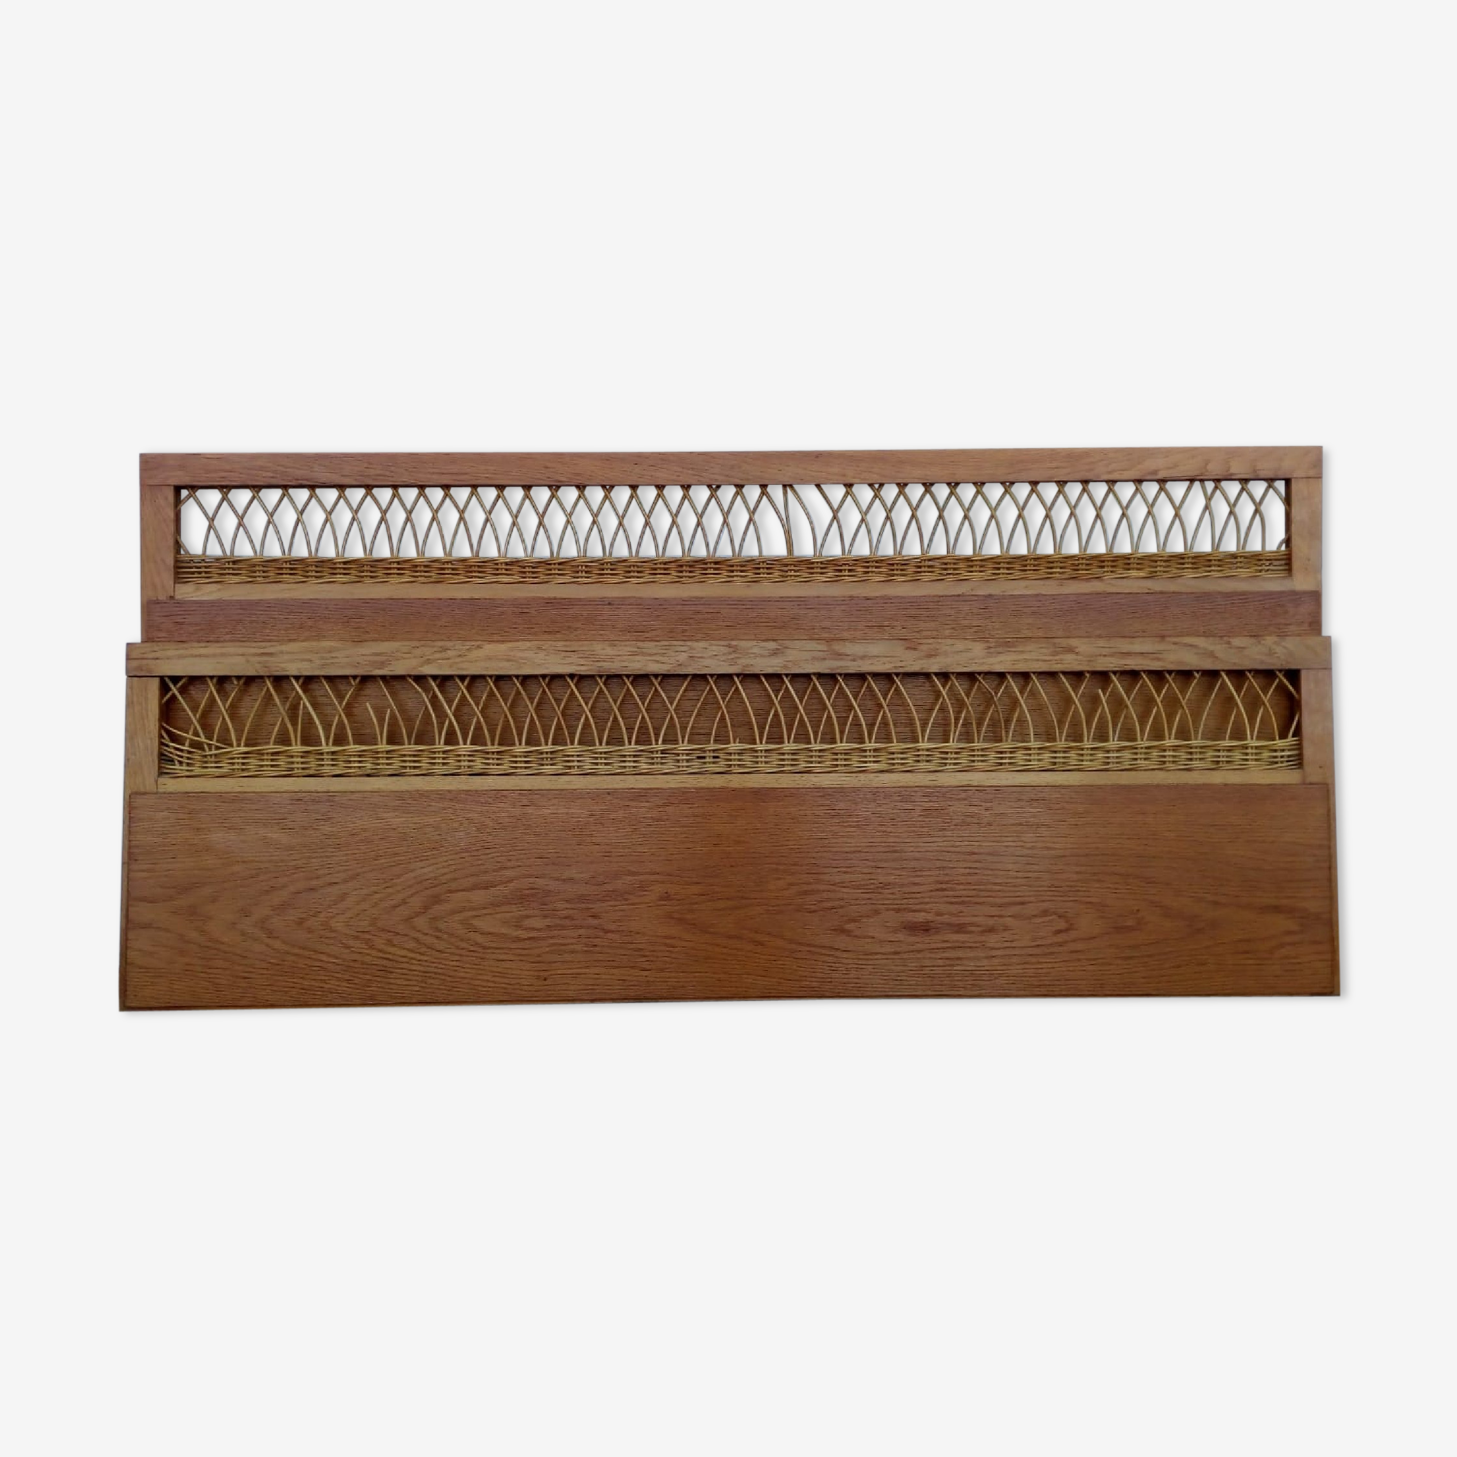 Head and foot of bed rattan